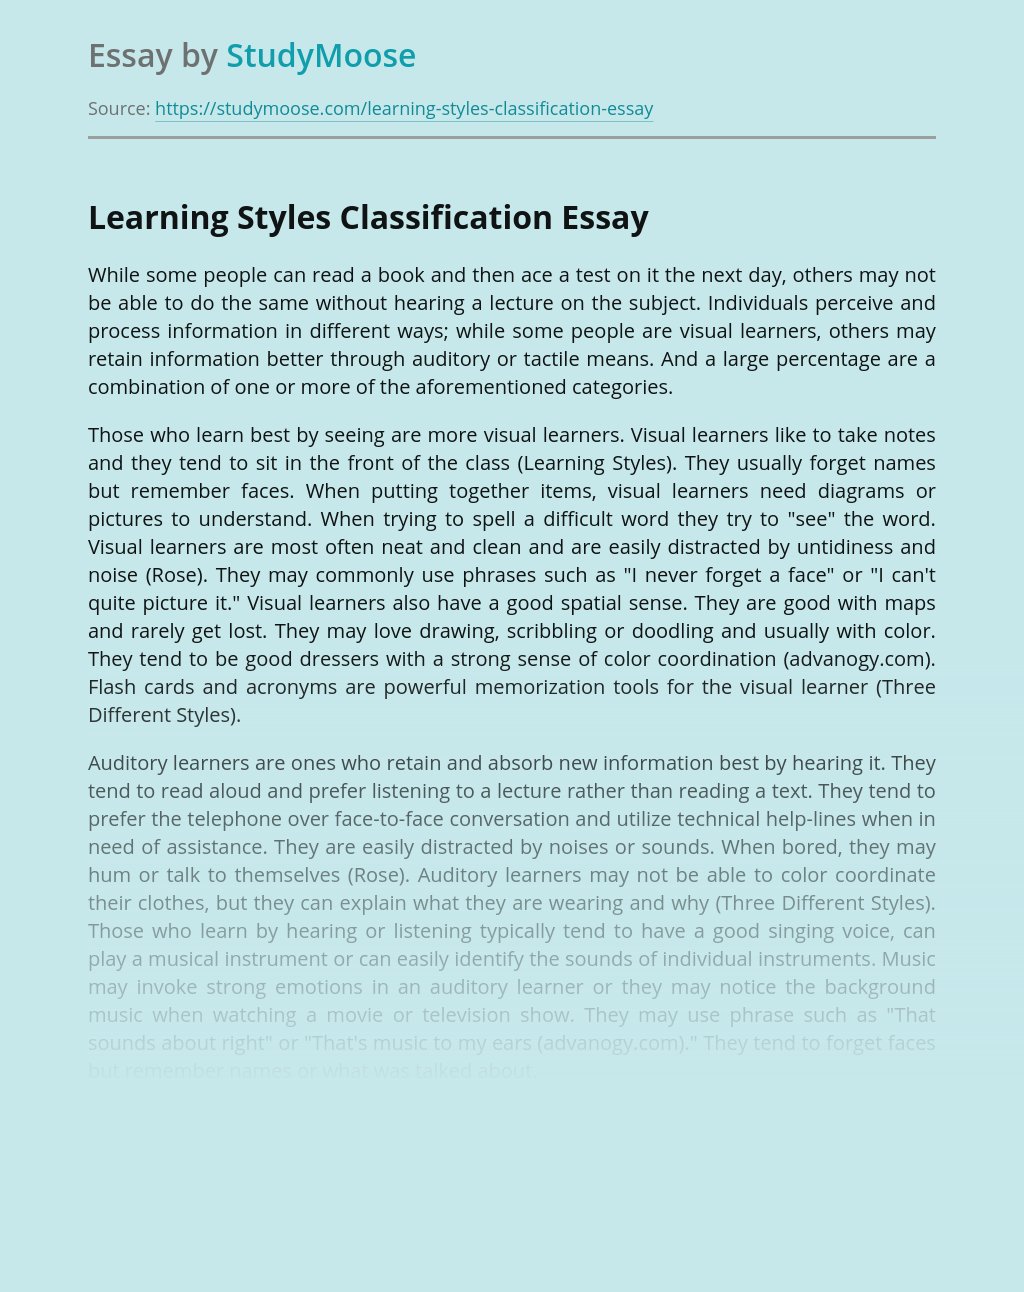 Learning Styles Classification